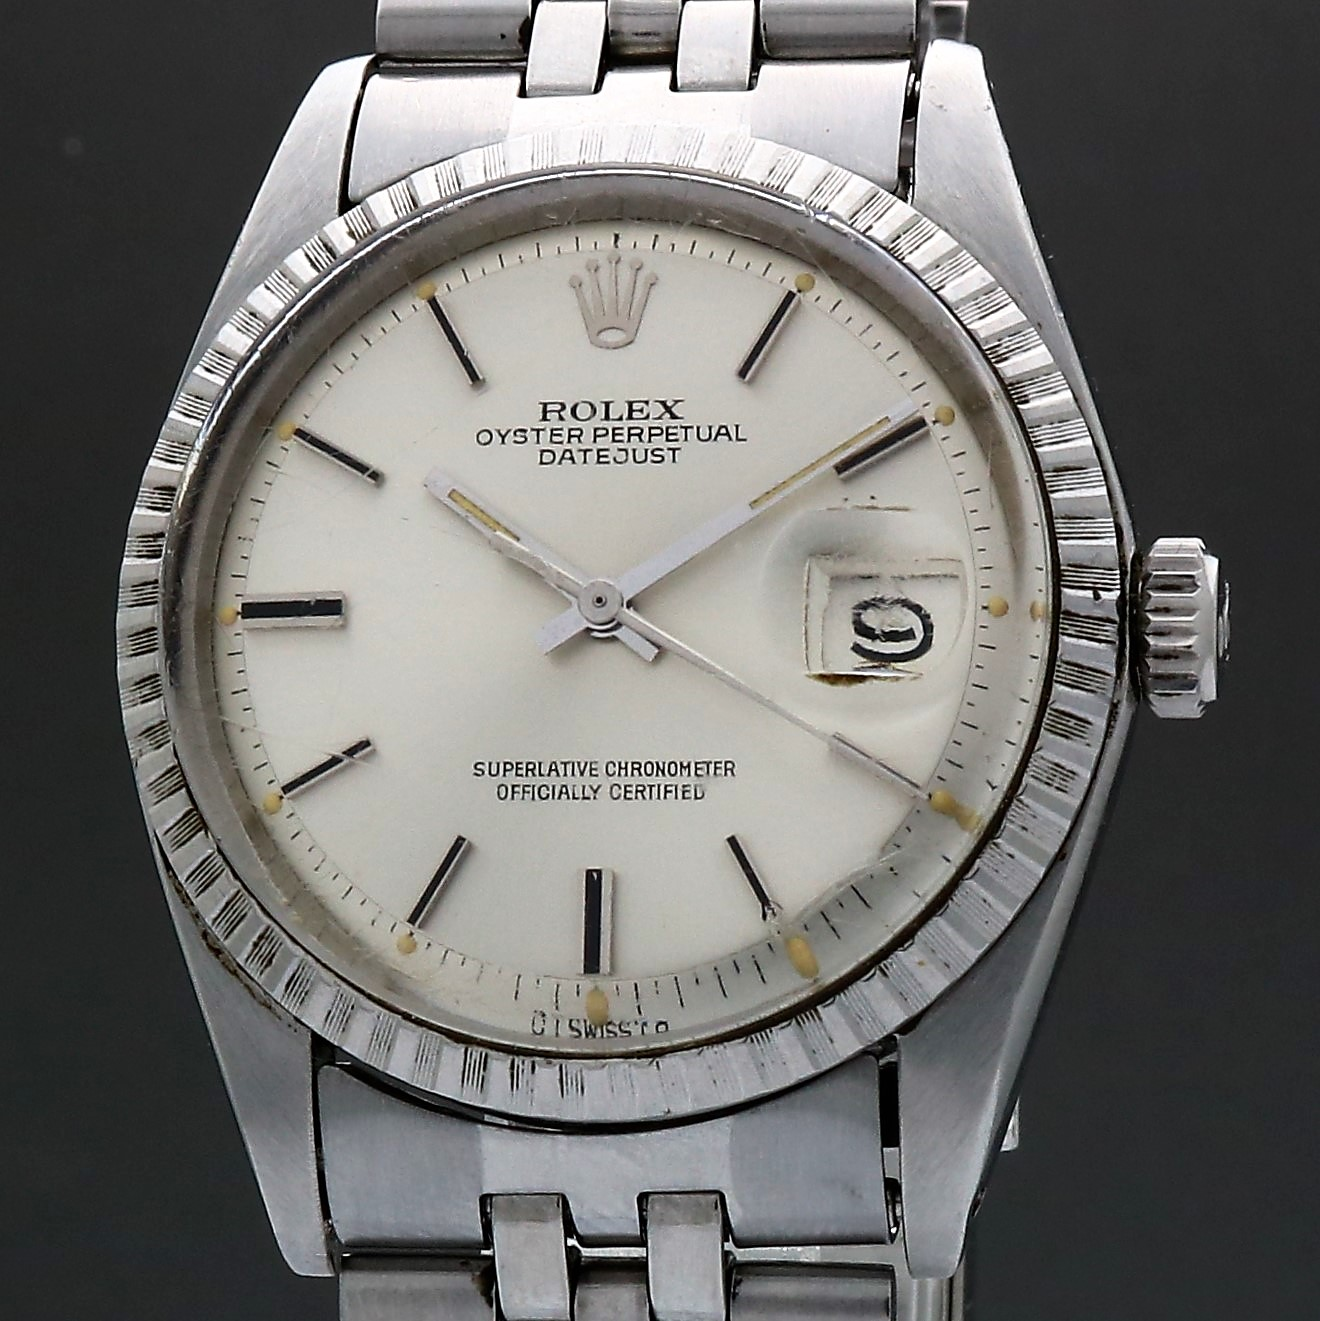 Rolex Oyster Perpetual Datejust 1603 Sigma Dial 1974 Vintage 36mm Auto